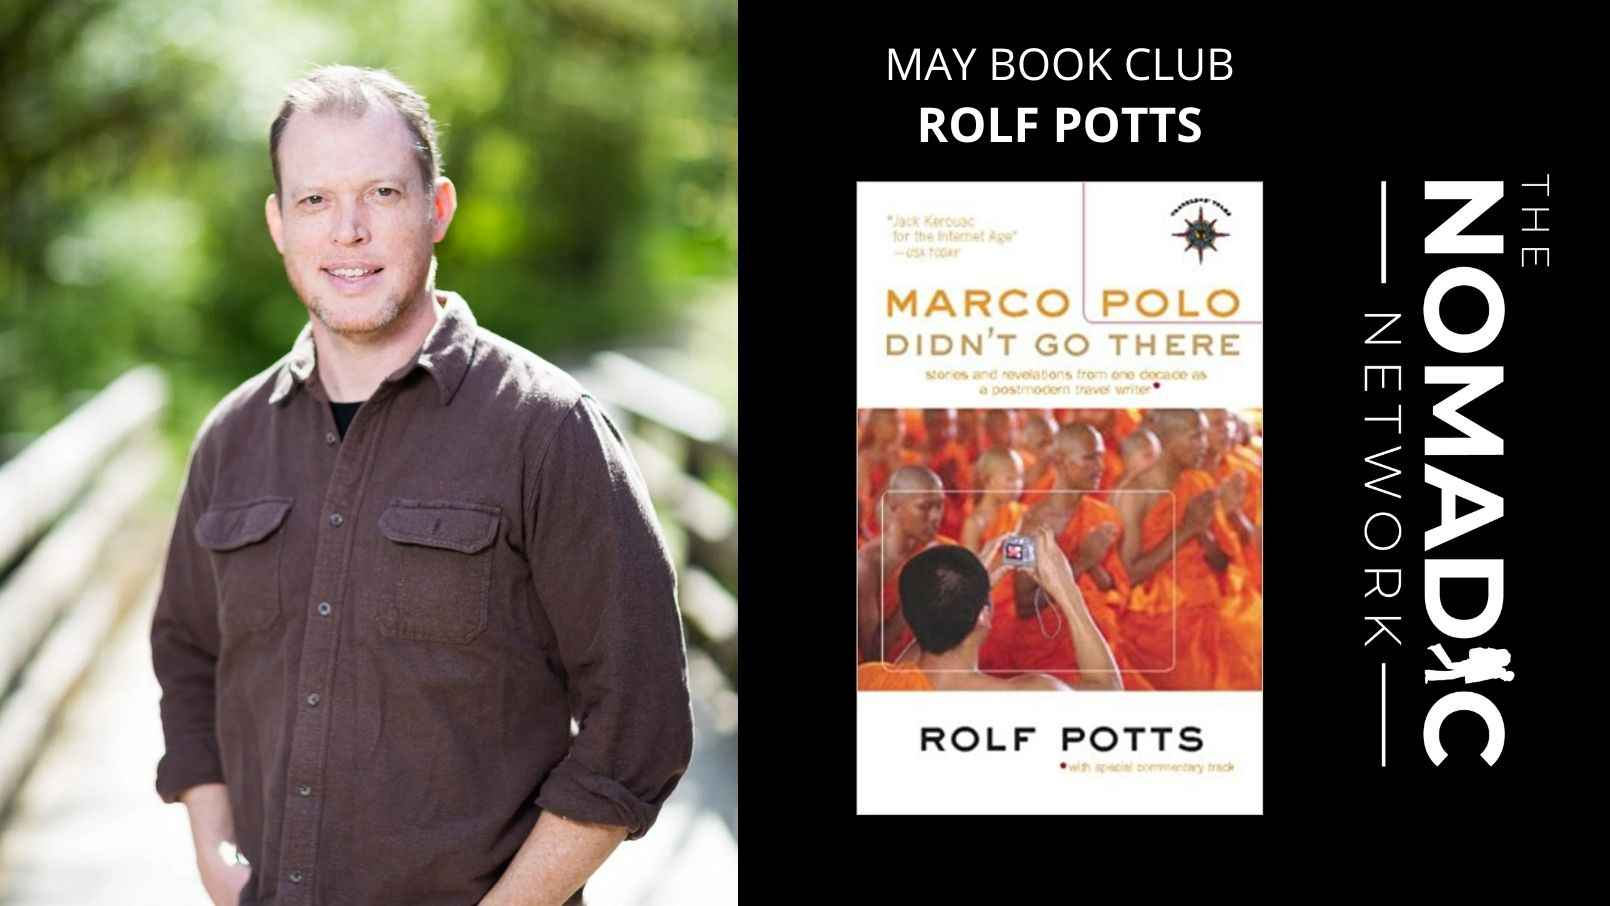 marco polo didn't go there book by rolf potts man standing on bridge